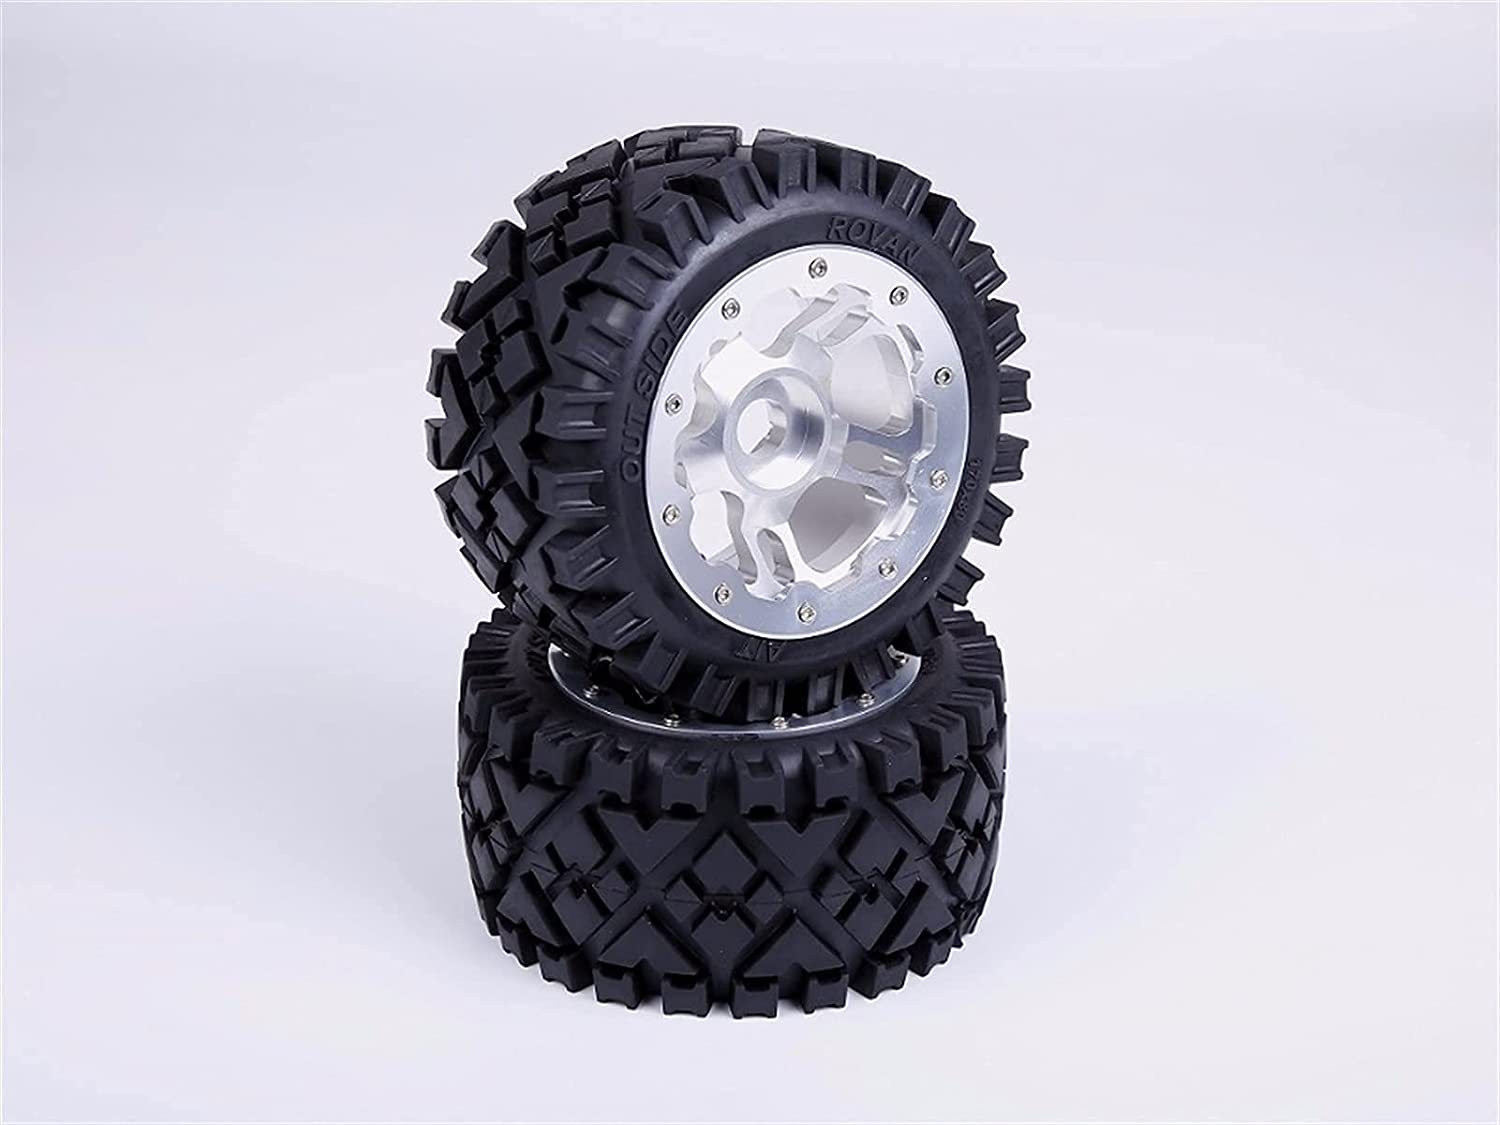 Zhusha 2pcs for 1 5 RC Baja 5B car B Department store Discount is also underway Strong Parts Rovan rc